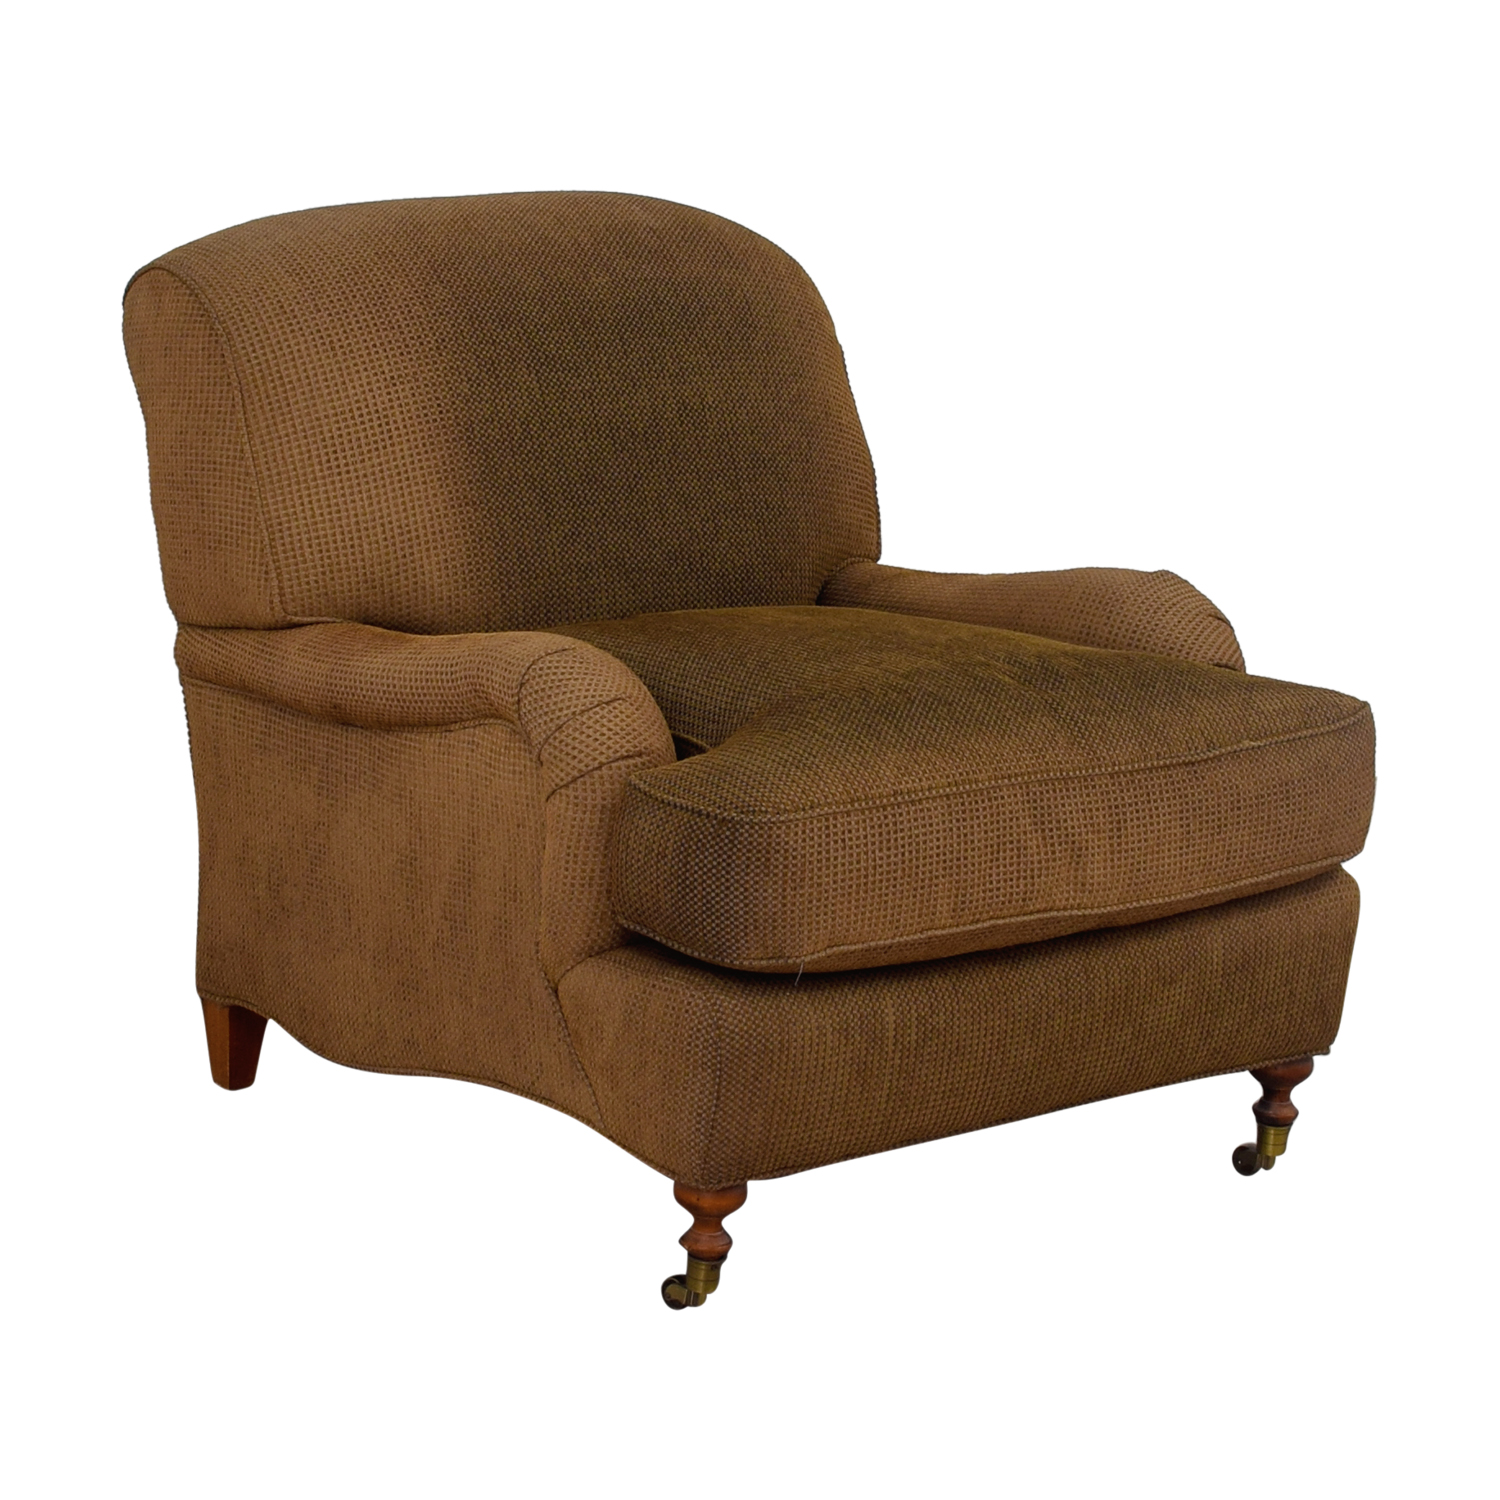 90 OFF  Brown Comfort Accent Chair  Chairs